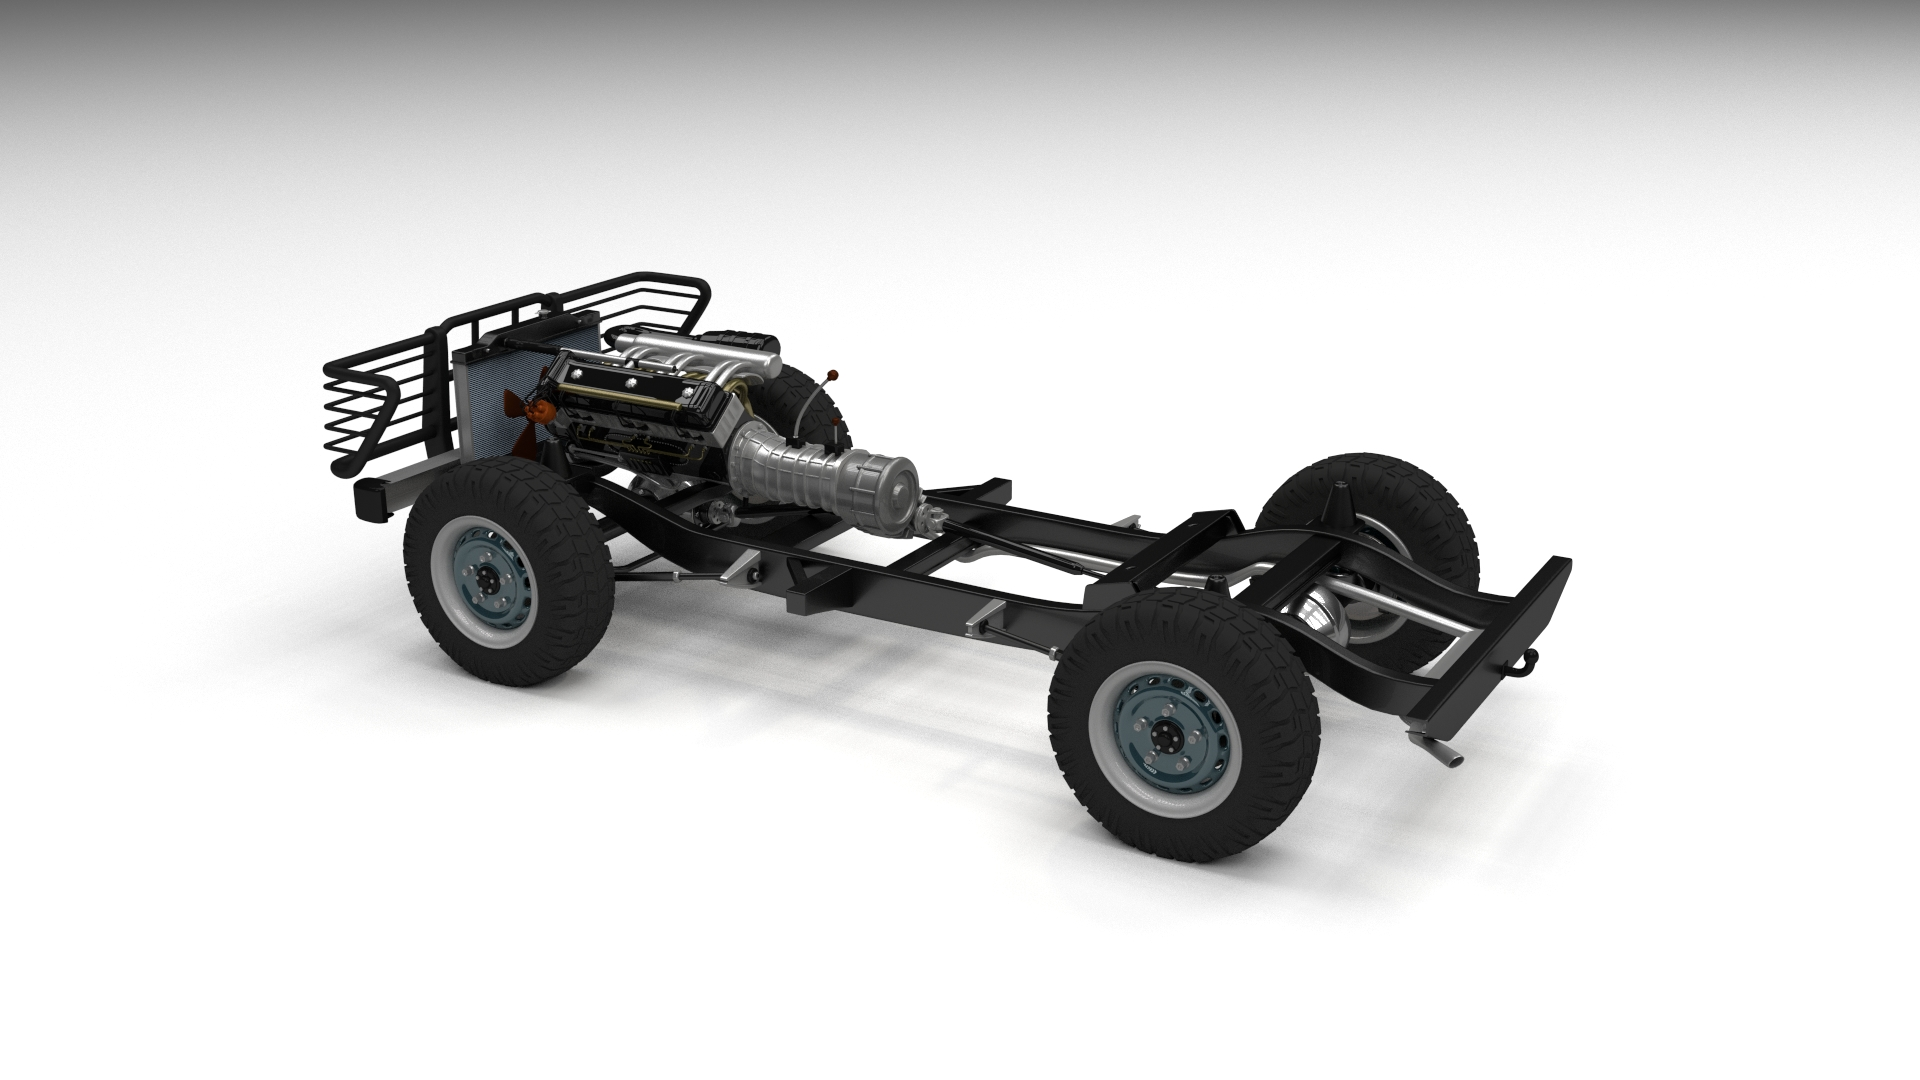 Full Land Rover Defender Pack w chassis and interior by dragosburian